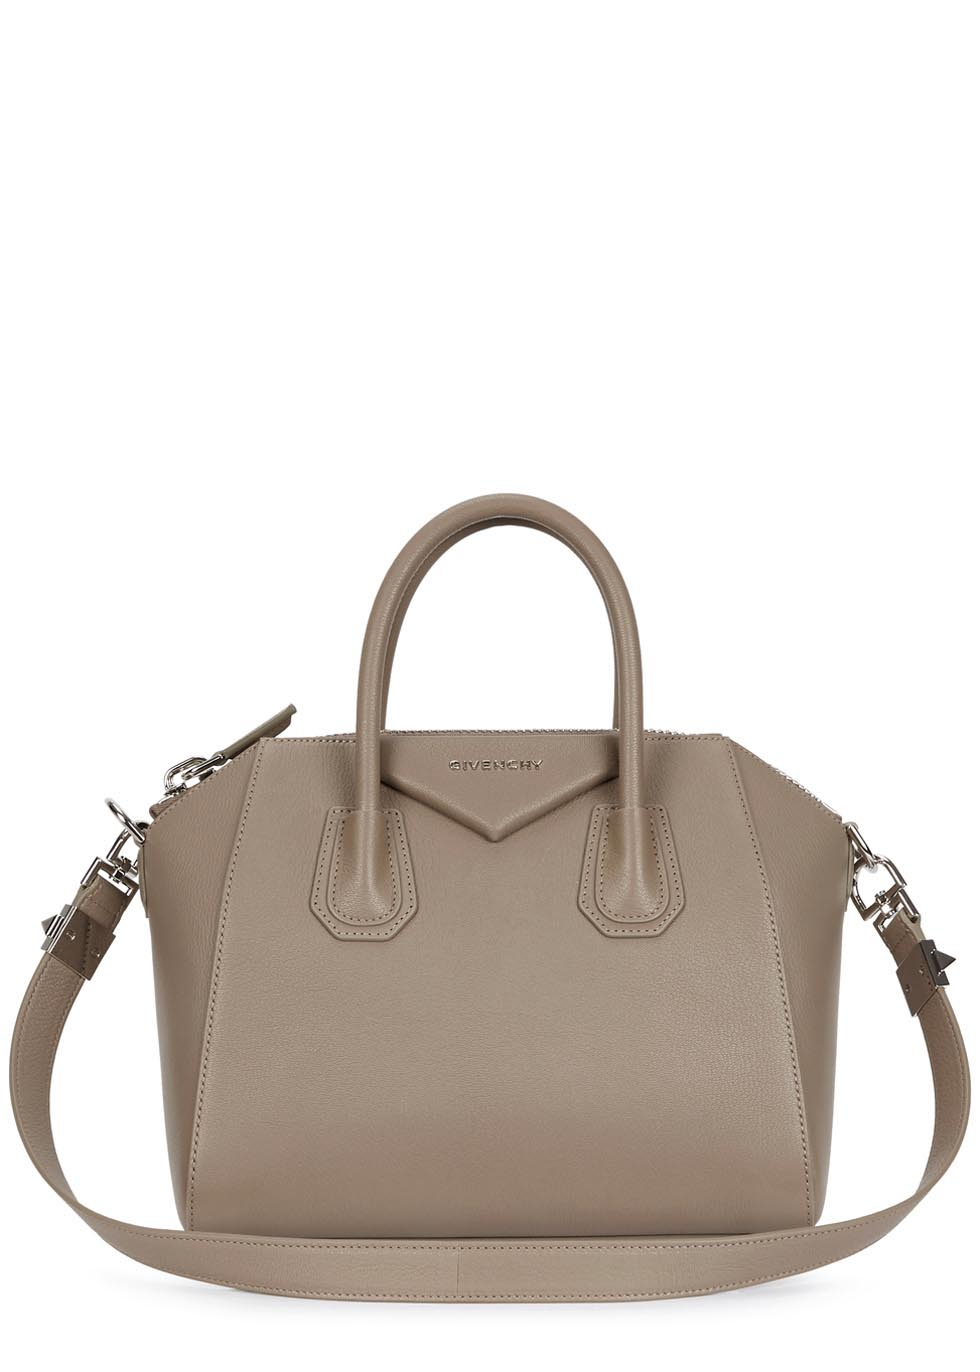 Givenchy Antigona Small Taupe Grained Leather Tote in Brown - Lyst d729fec740689